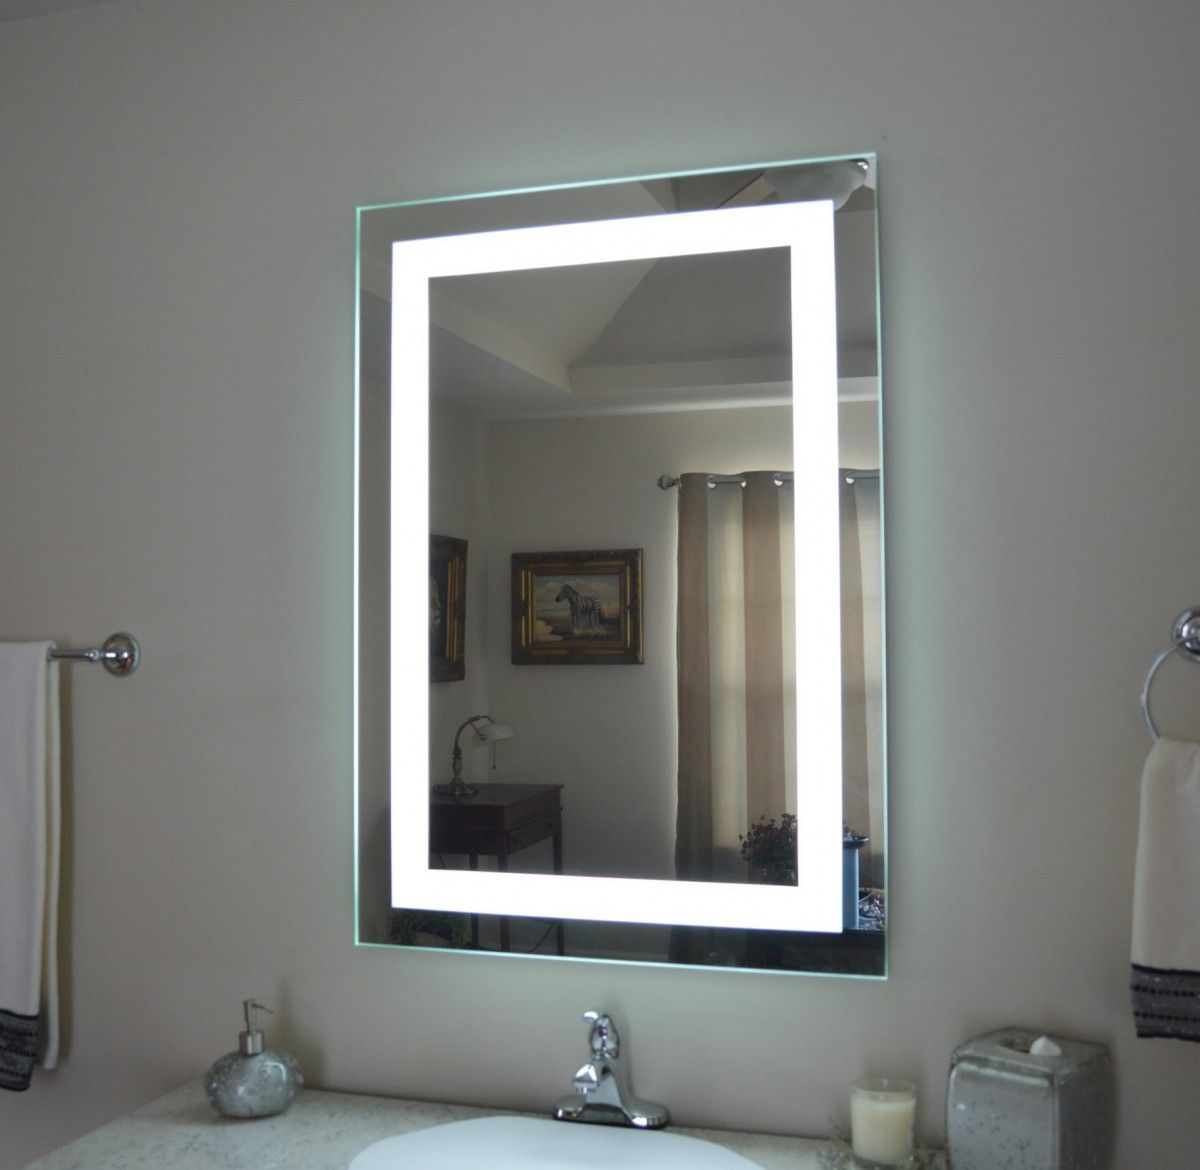 Wall Mirror With Storage bathroom mirror led - google search | asia sf from ayman